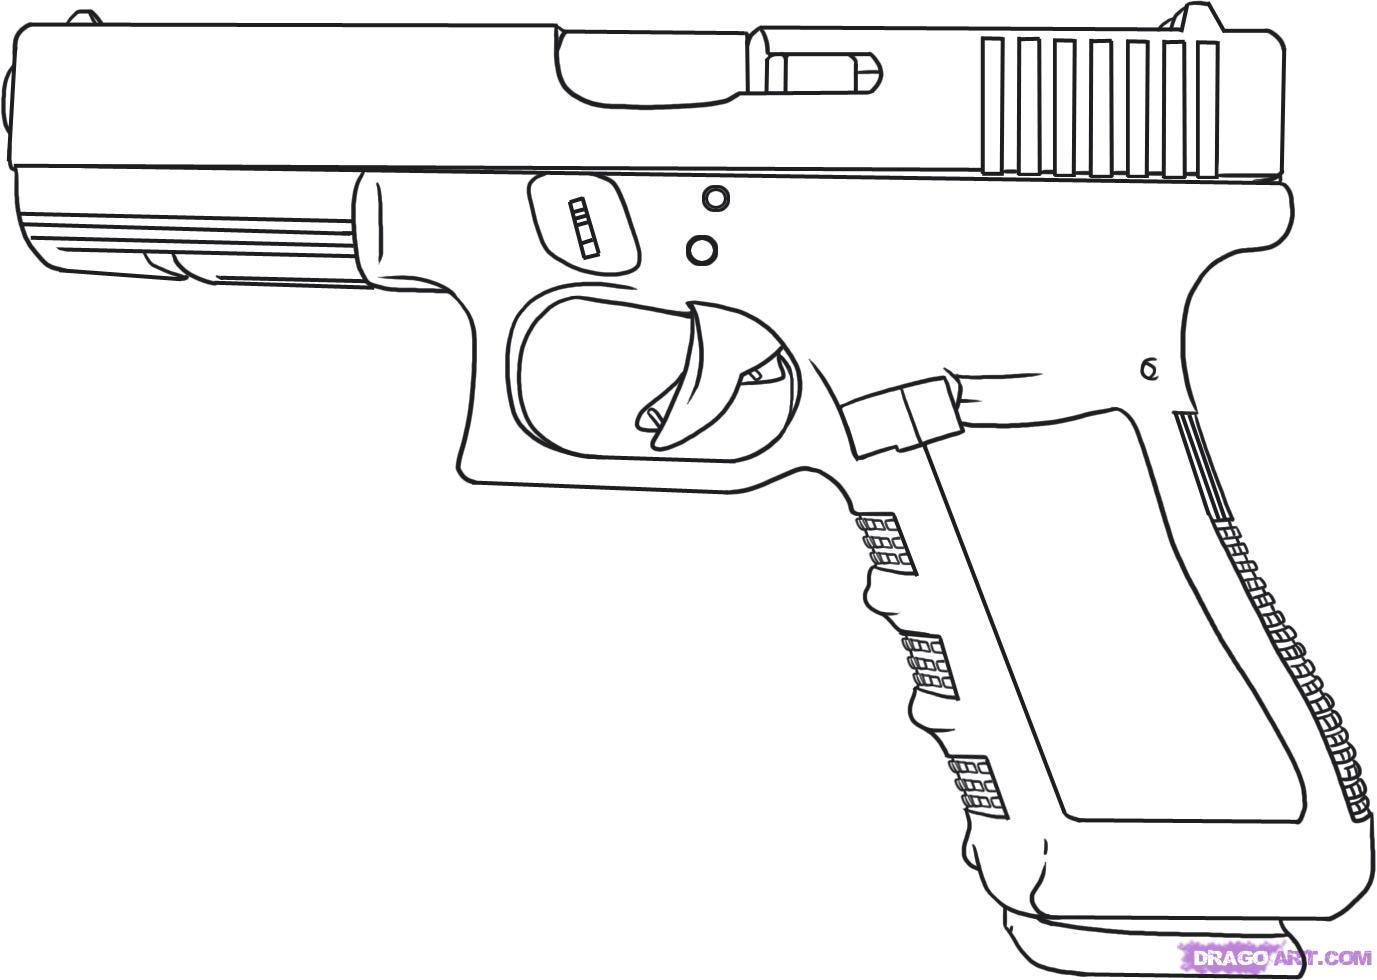 Drawn pistol gun bullet Gun  Weapons step hand